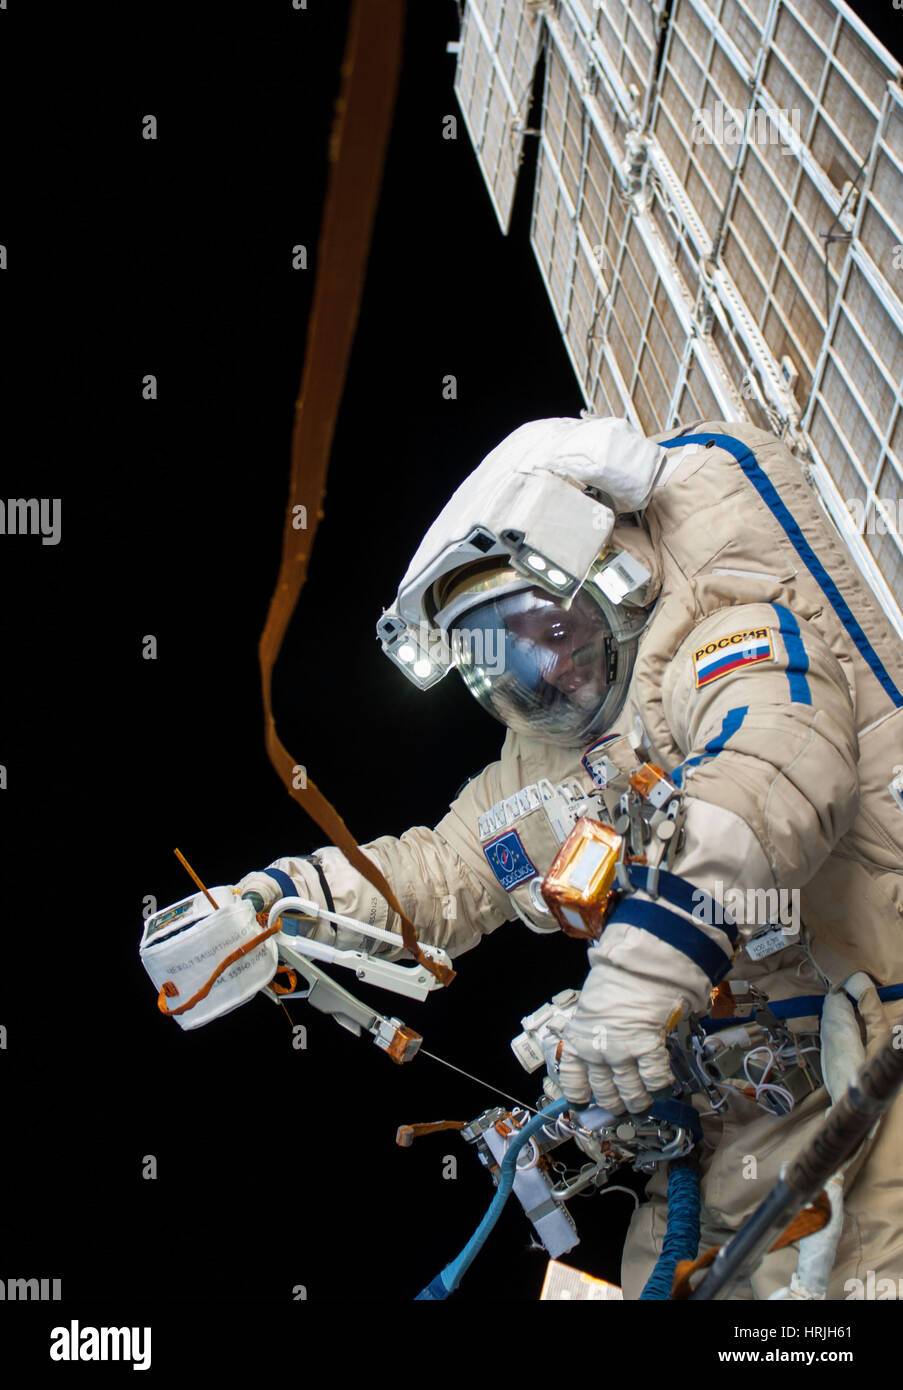 Oleg Artemyev at the ISS - Stock Image